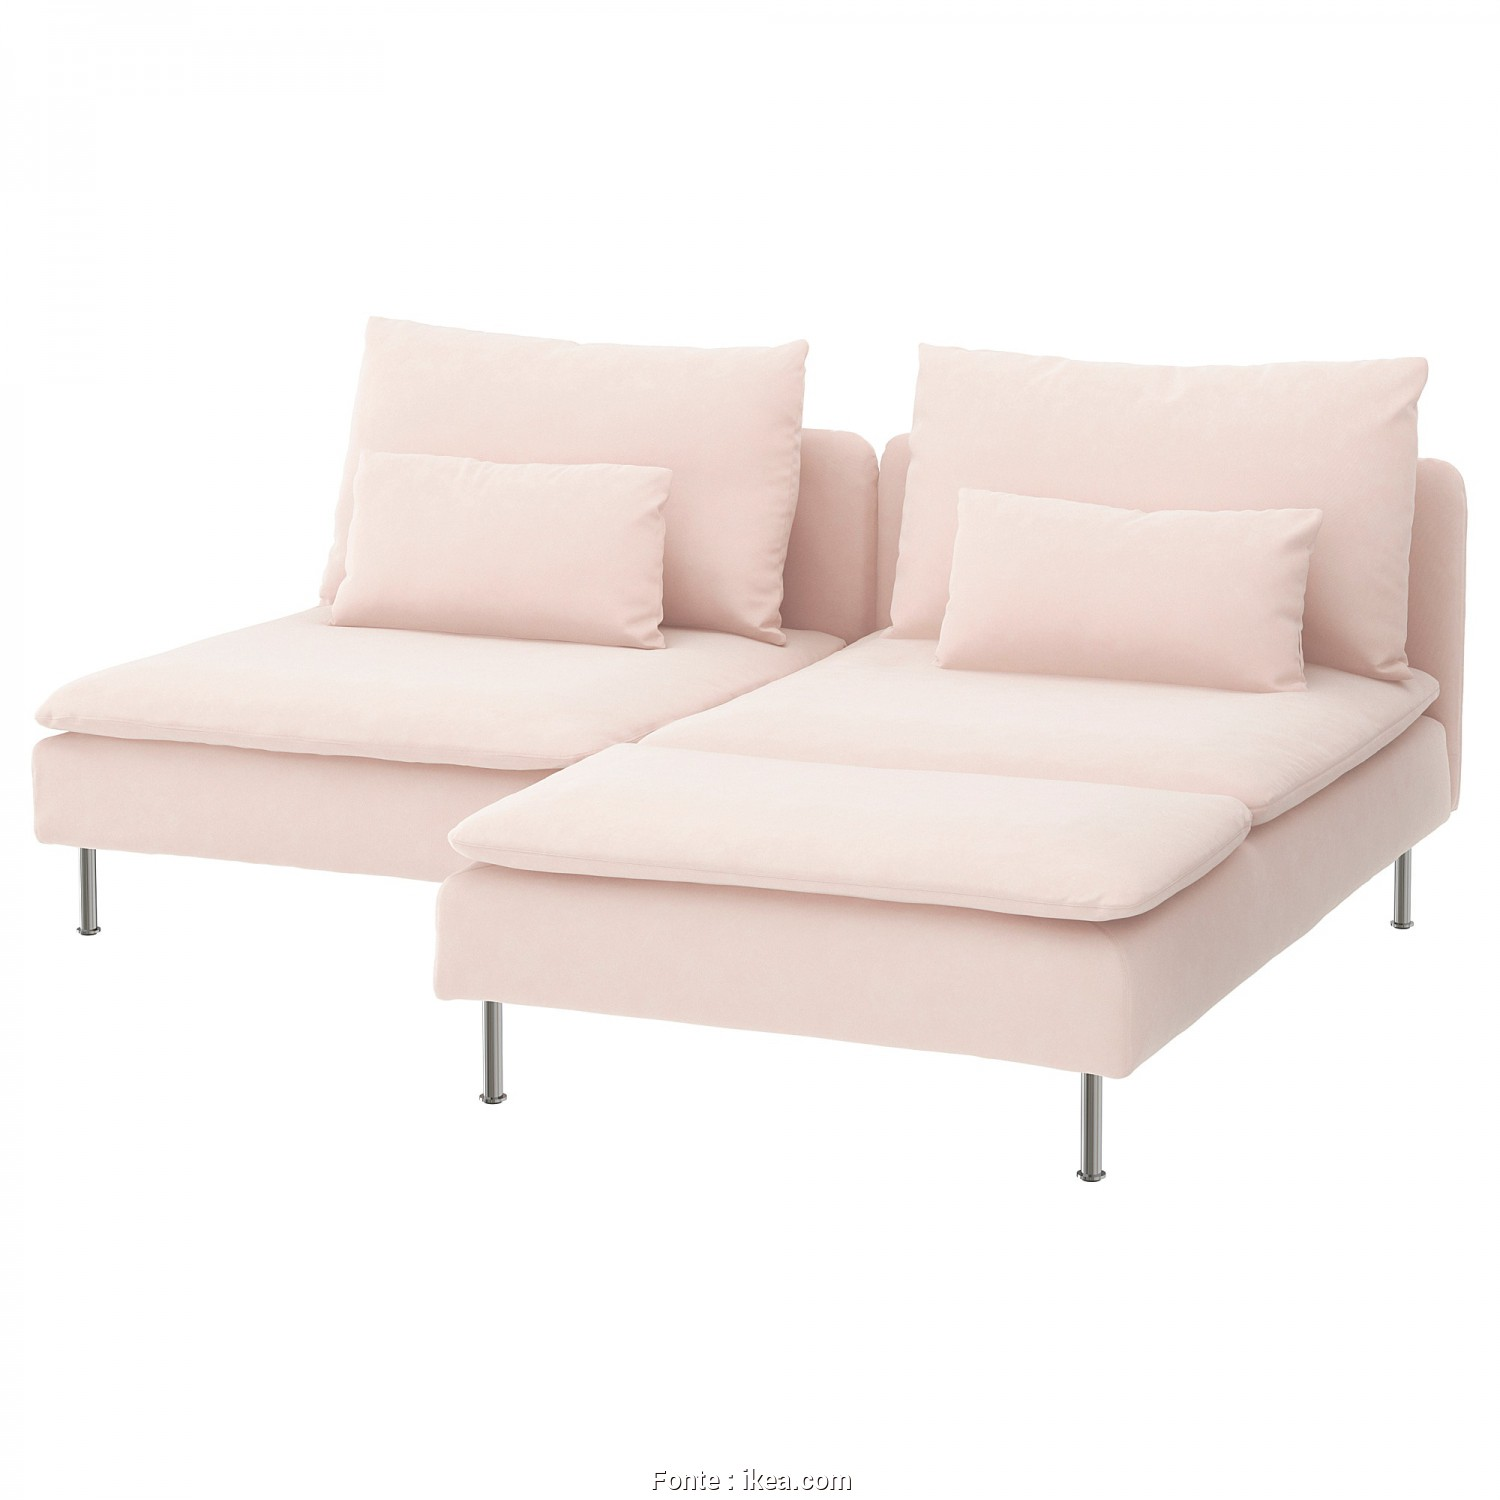 Backabro Sofa, With Chaise Longue £725 Ikea, Rustico IKEA SÖDERHAMN 3-Seat Sofa 10 Year Guarantee. Read About, Terms In The